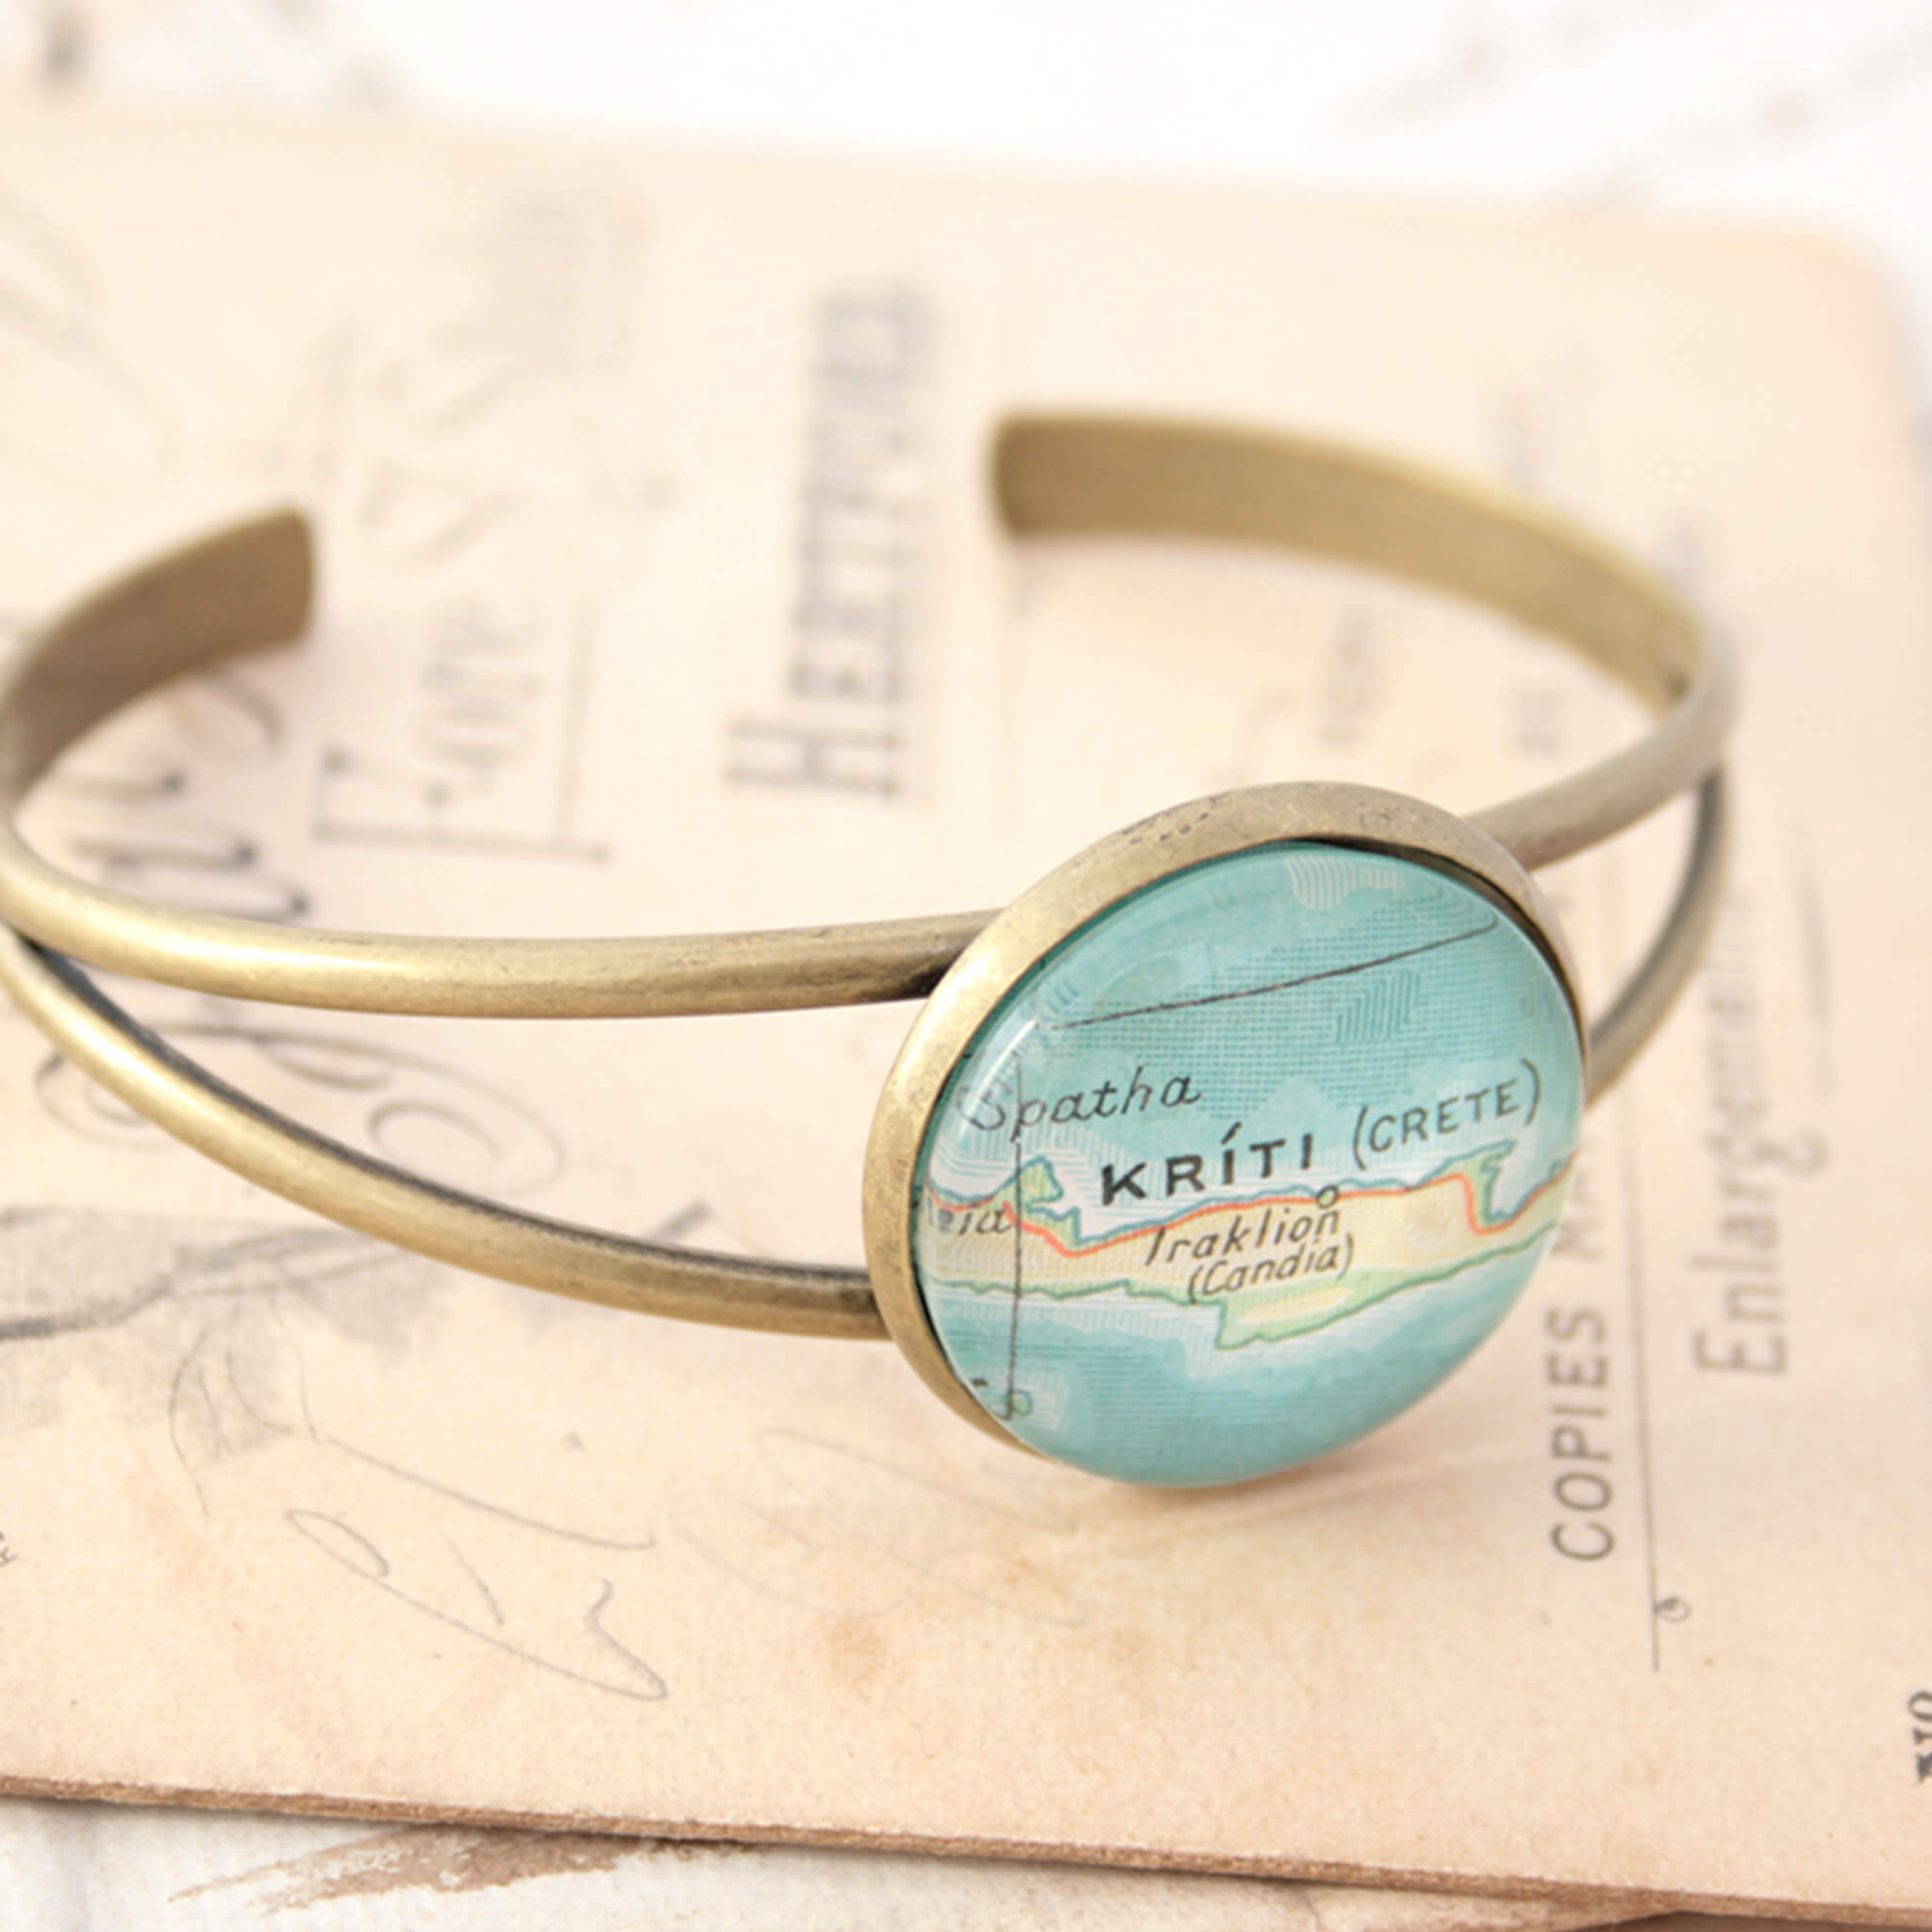 bangle bracelet in antique bronze tone, personalised with map of Kriti